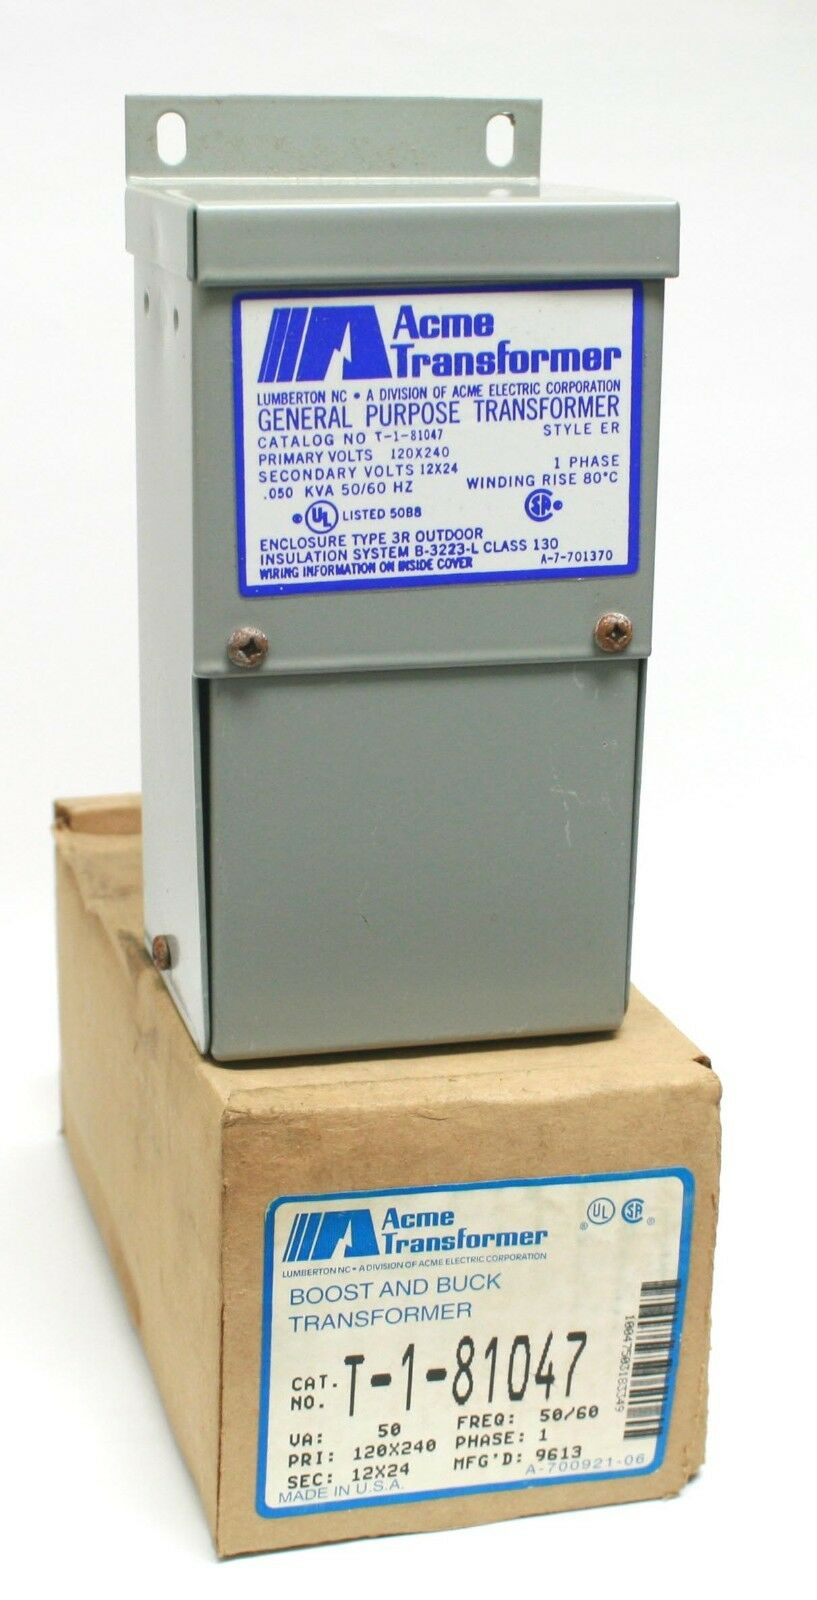 Acme Transformer T 1 81047 Boost And Buck 50va Prim 120x240v Sec Single Phase Wiring Diagrams 12x24v 1ph Of 9only 3 Available